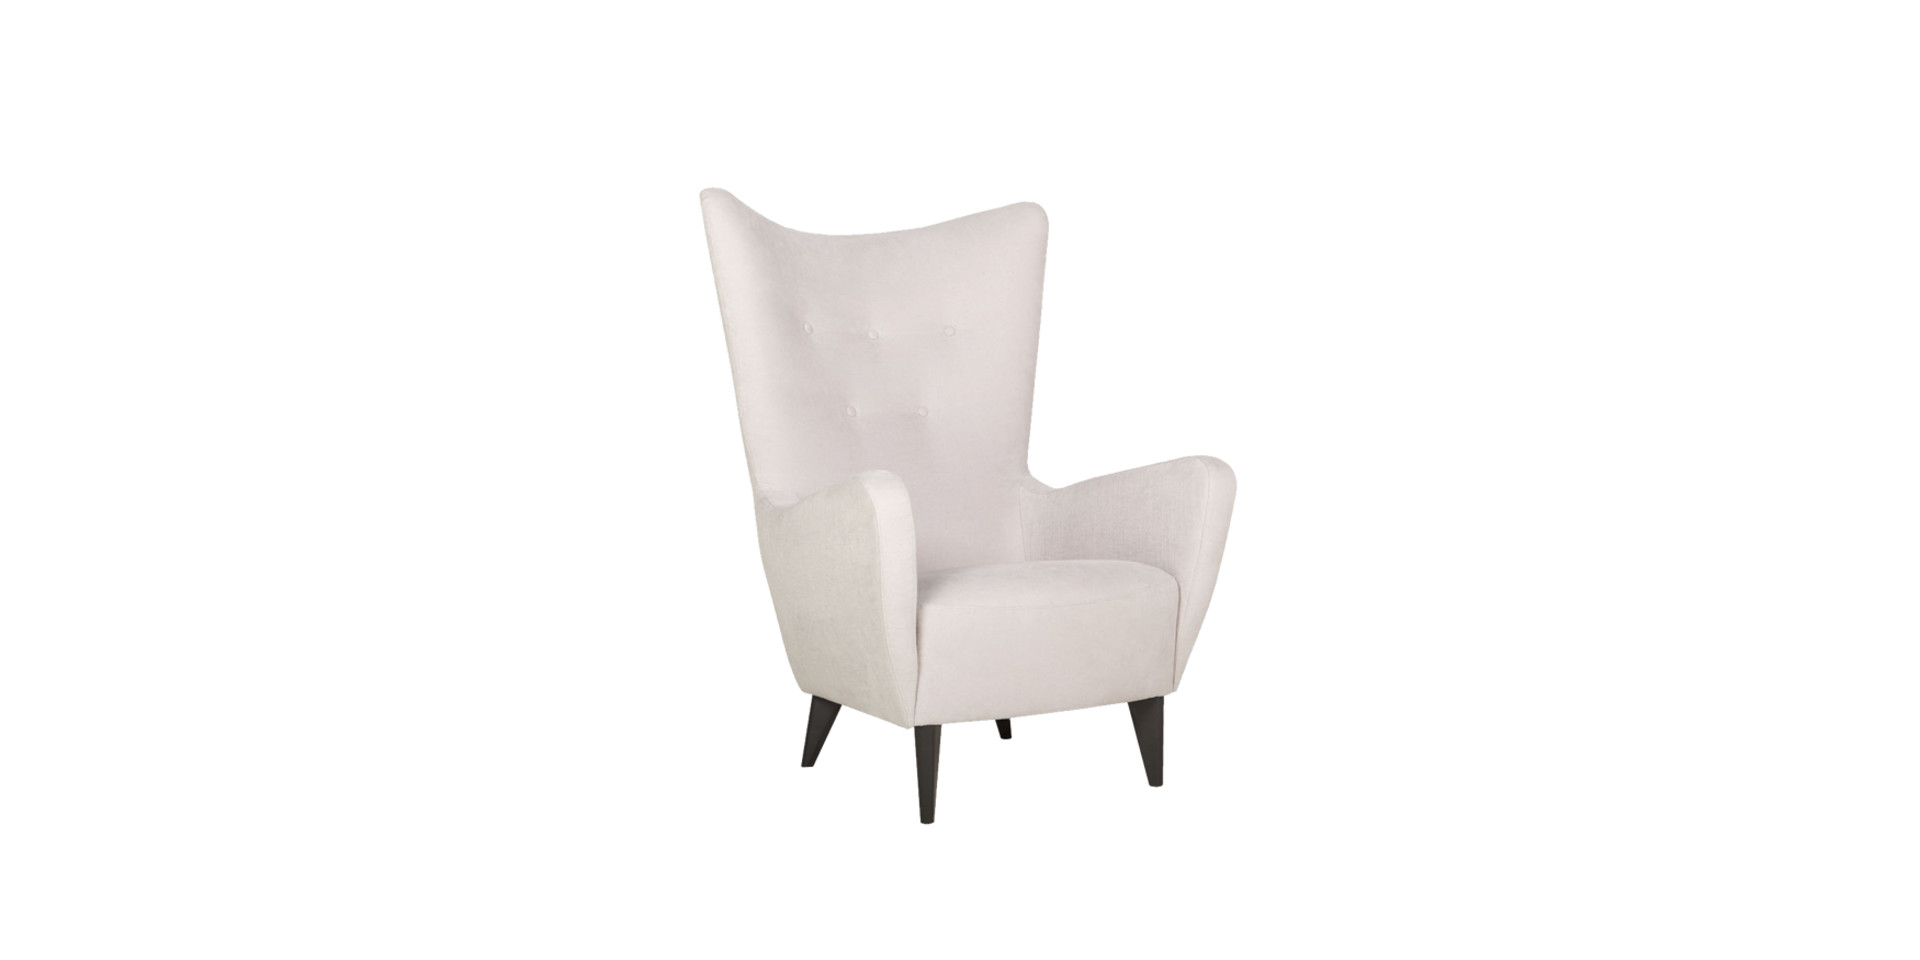 sits-kato-fauteuil-armchair_buttons_caleido10996_grey-beige_2